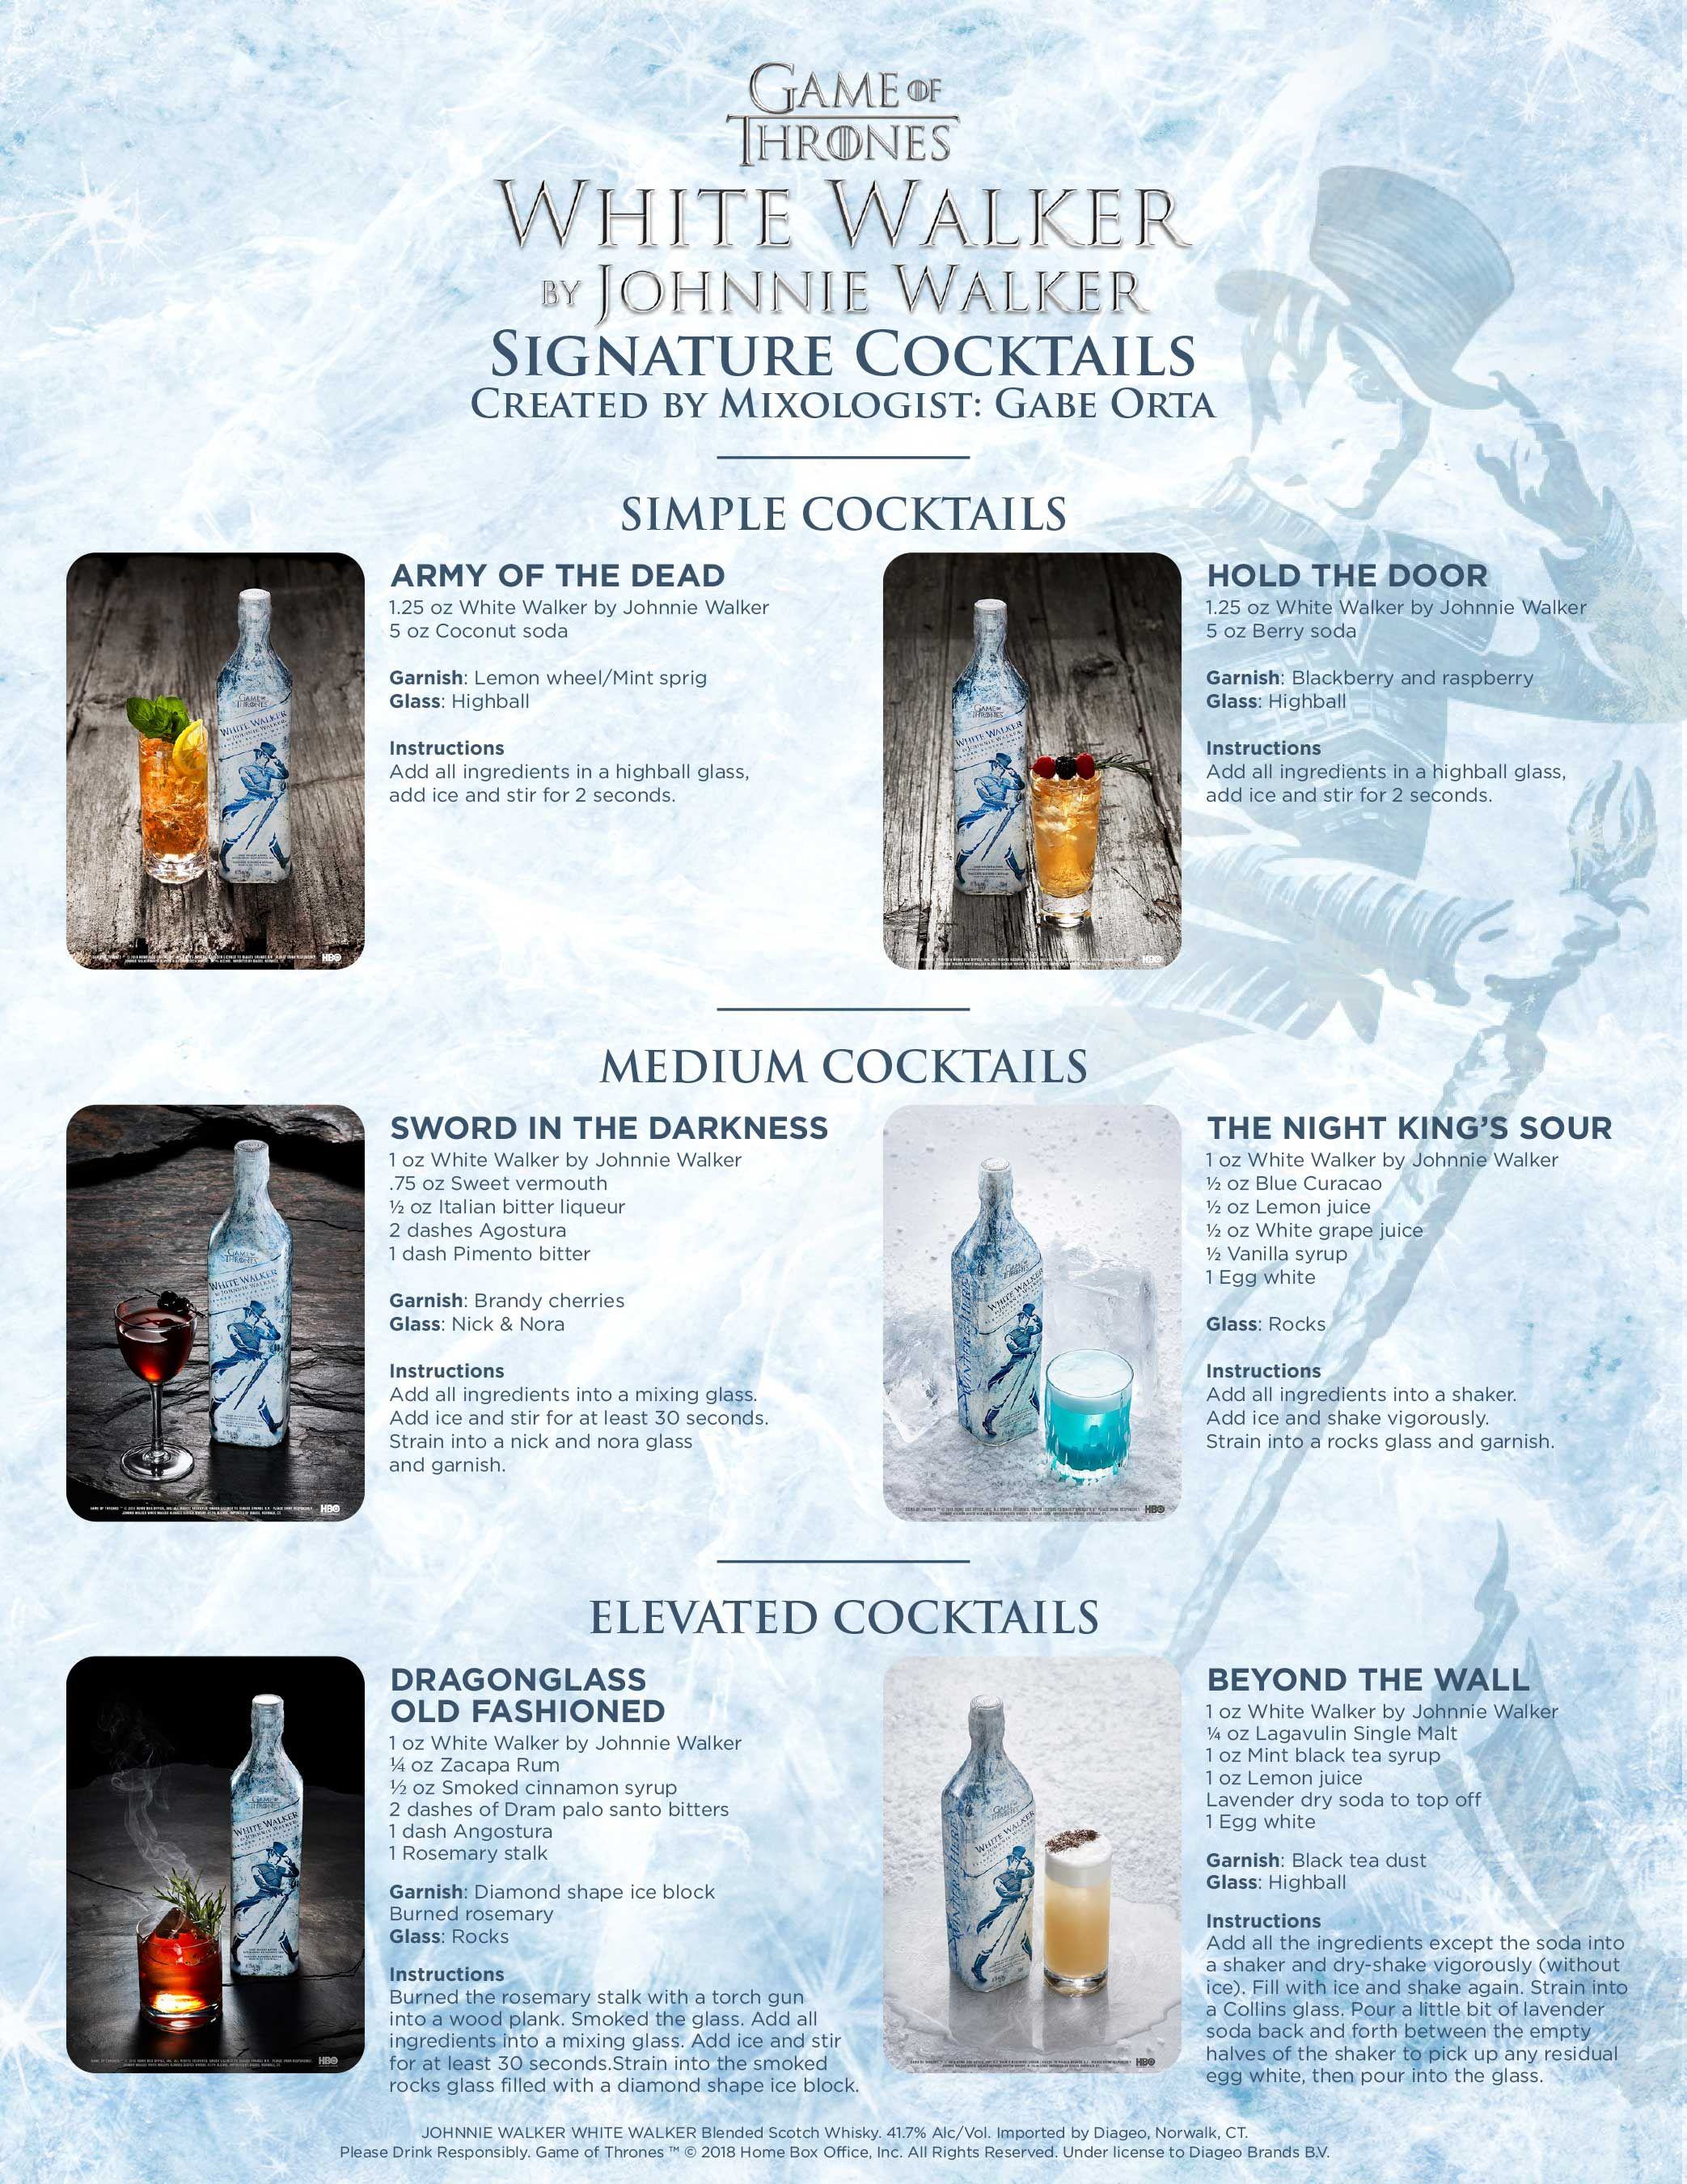 Specialty White Walker By Johnnie Walker Cocktail Recipes Created By Mixologist Gabe Orta Johnnie Walker Cocktails Game Of Thrones Cocktails Johnnie Walker